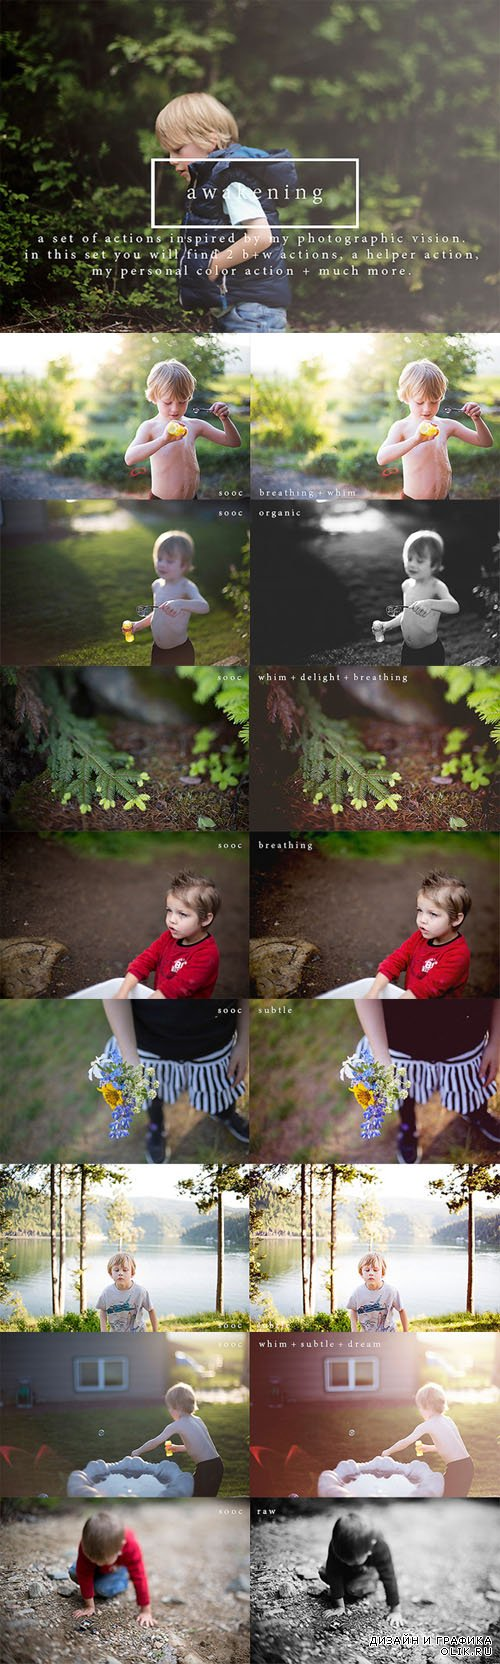 Awakening - Photoshop Actions - Creativemarket 83338